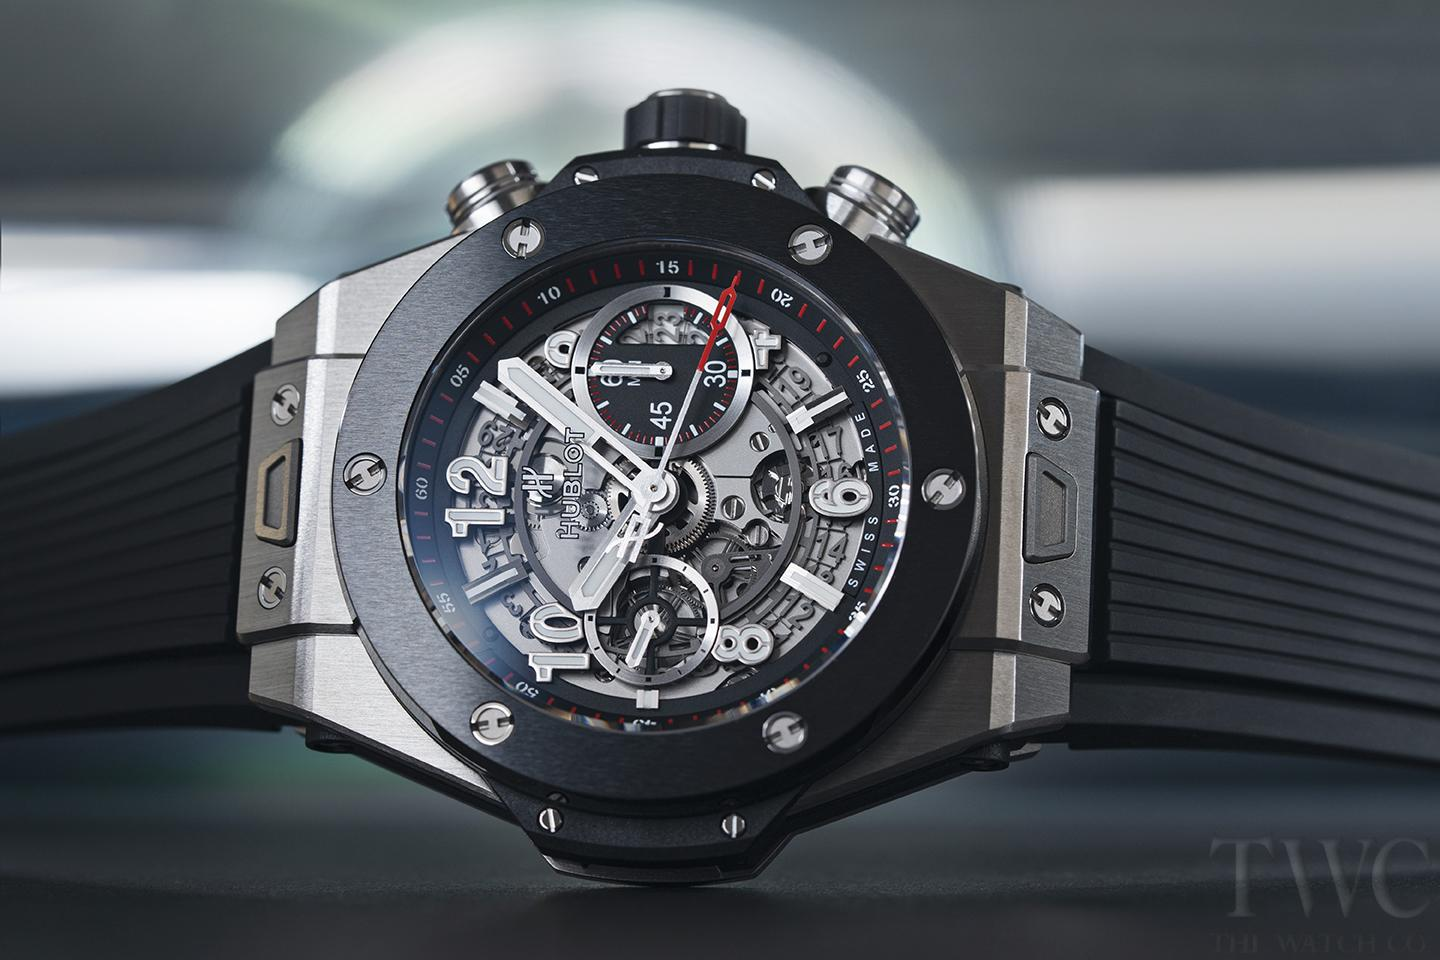 5 Stunning Hublot Watches You Should Own This 2021!